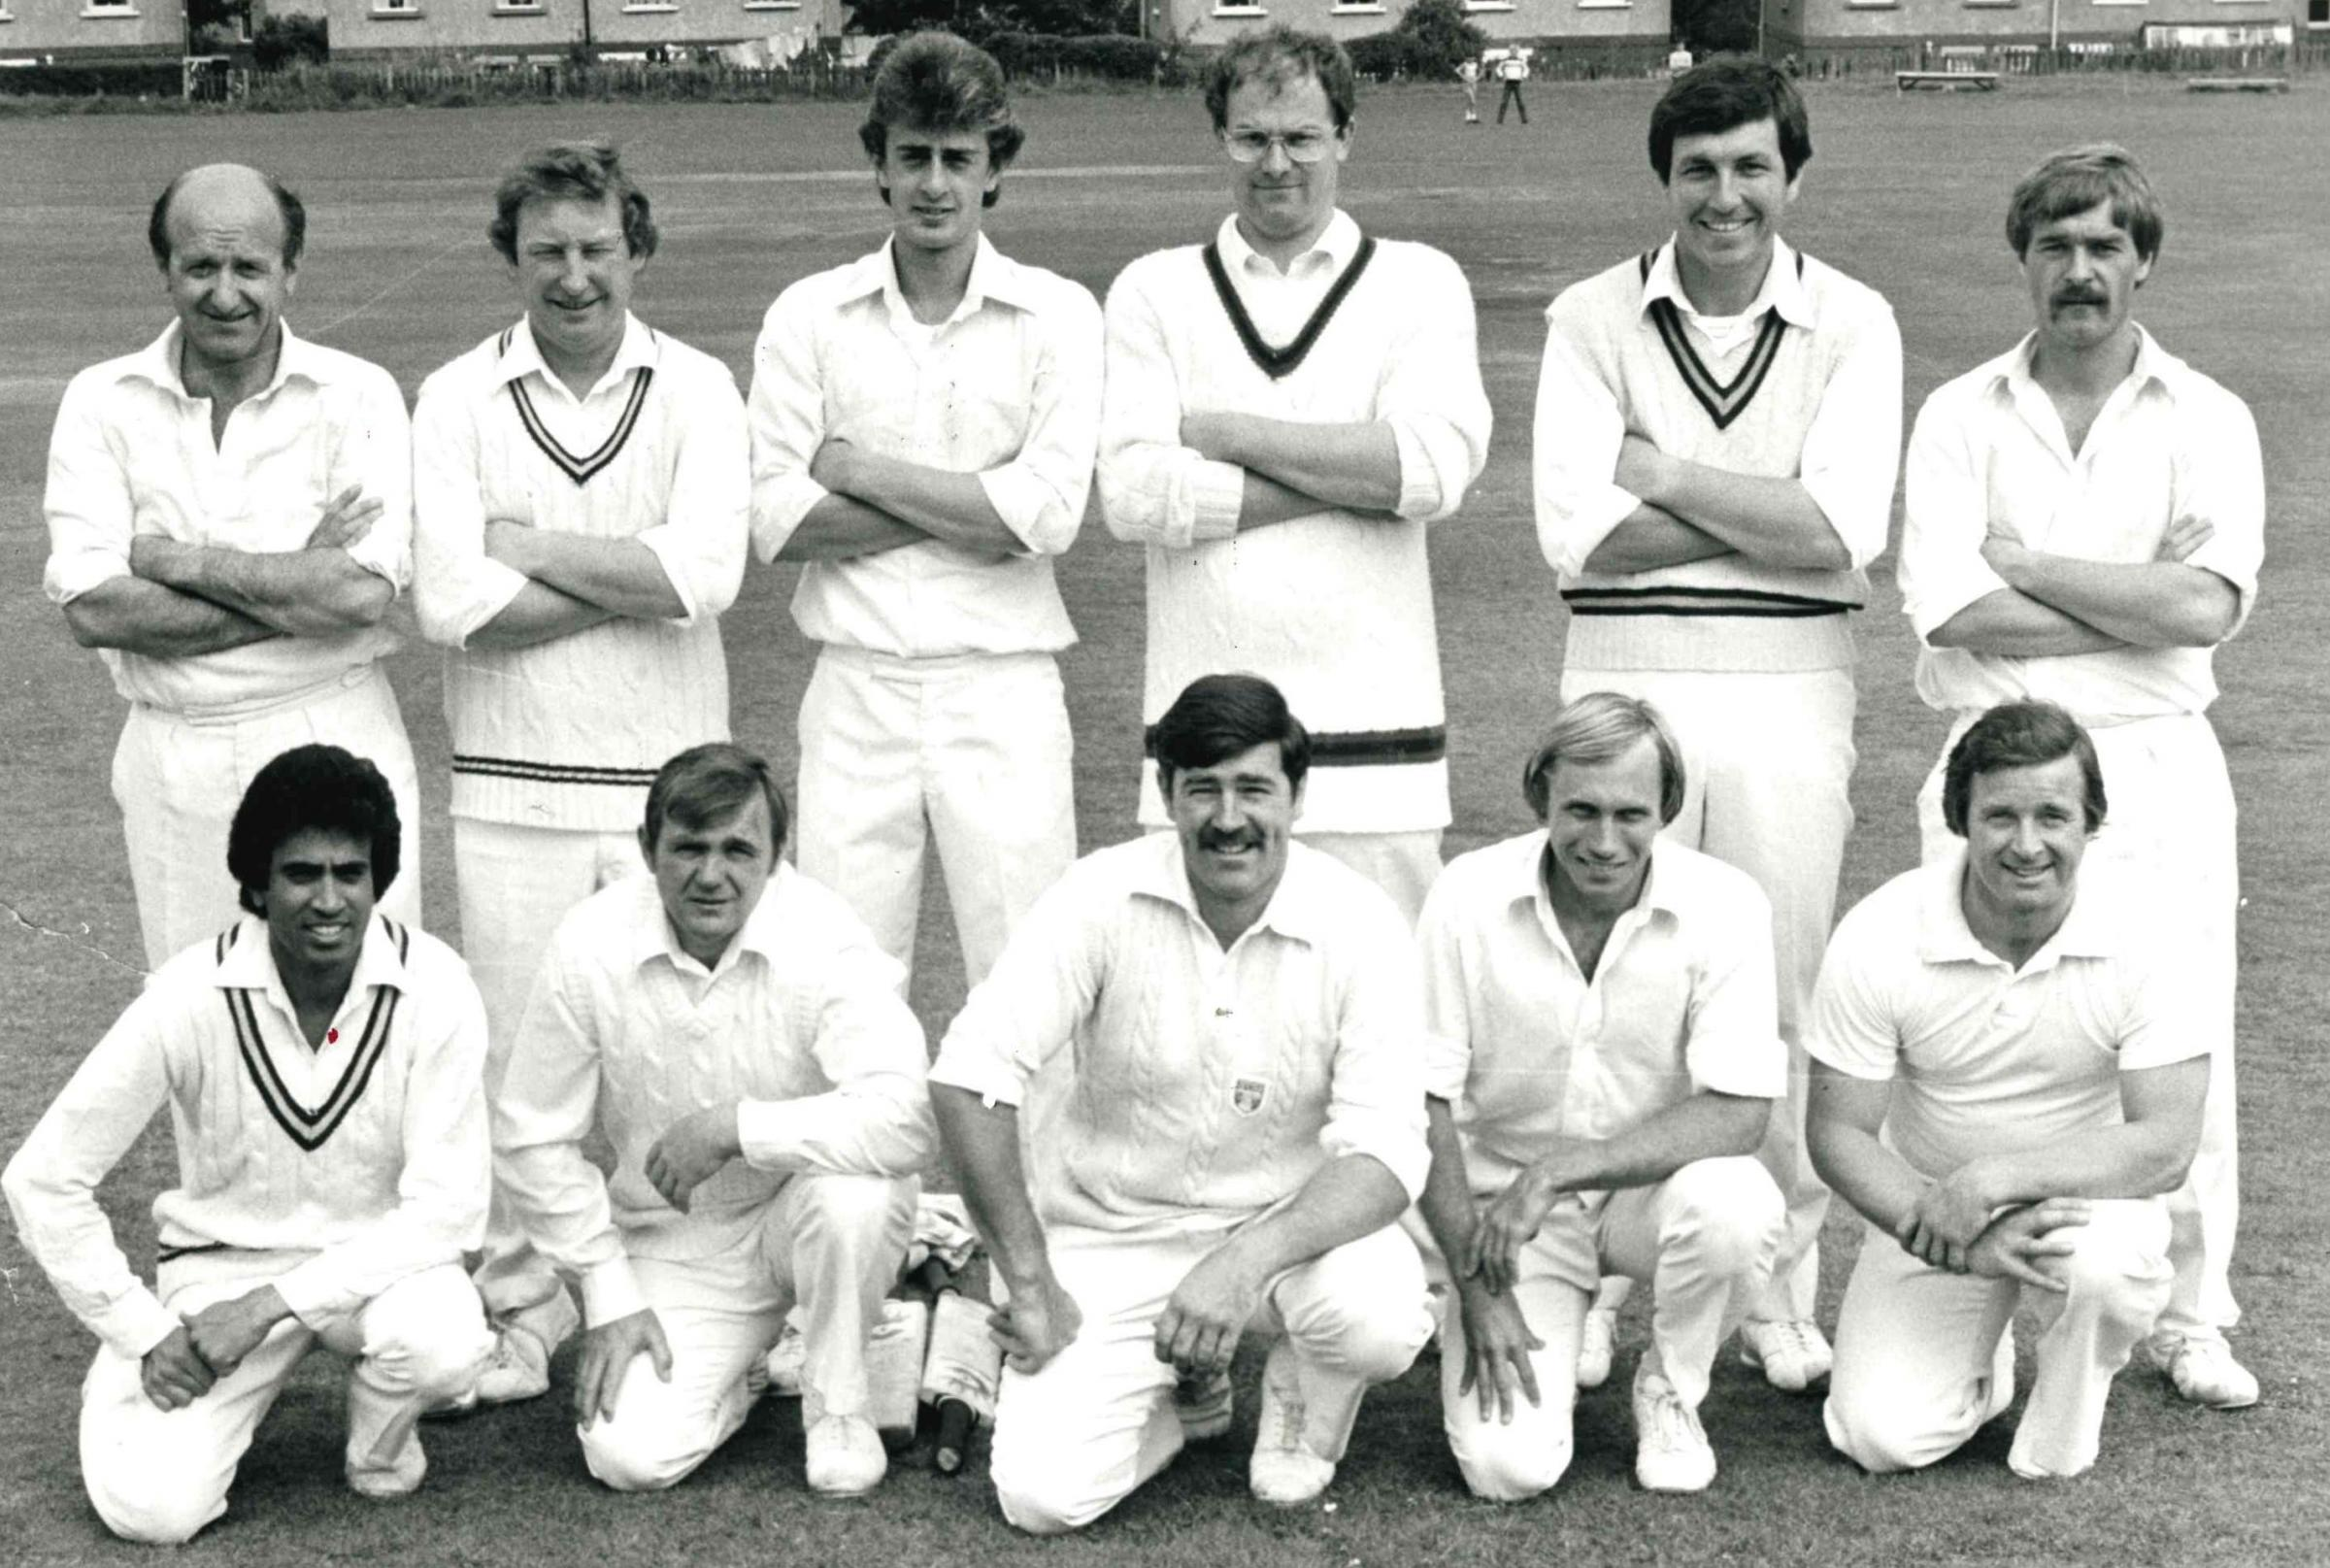 ECCLESHILL 1982: From left, back: Barry Firn, Dave Hallett, Andy Wilsdon, Mick Robinson, Colin Raper, Peter Vallance. Front: Numan Shabir, Brian Shirley, Des Wyrill (captain), Wayne Giebel, Frankie Williams.